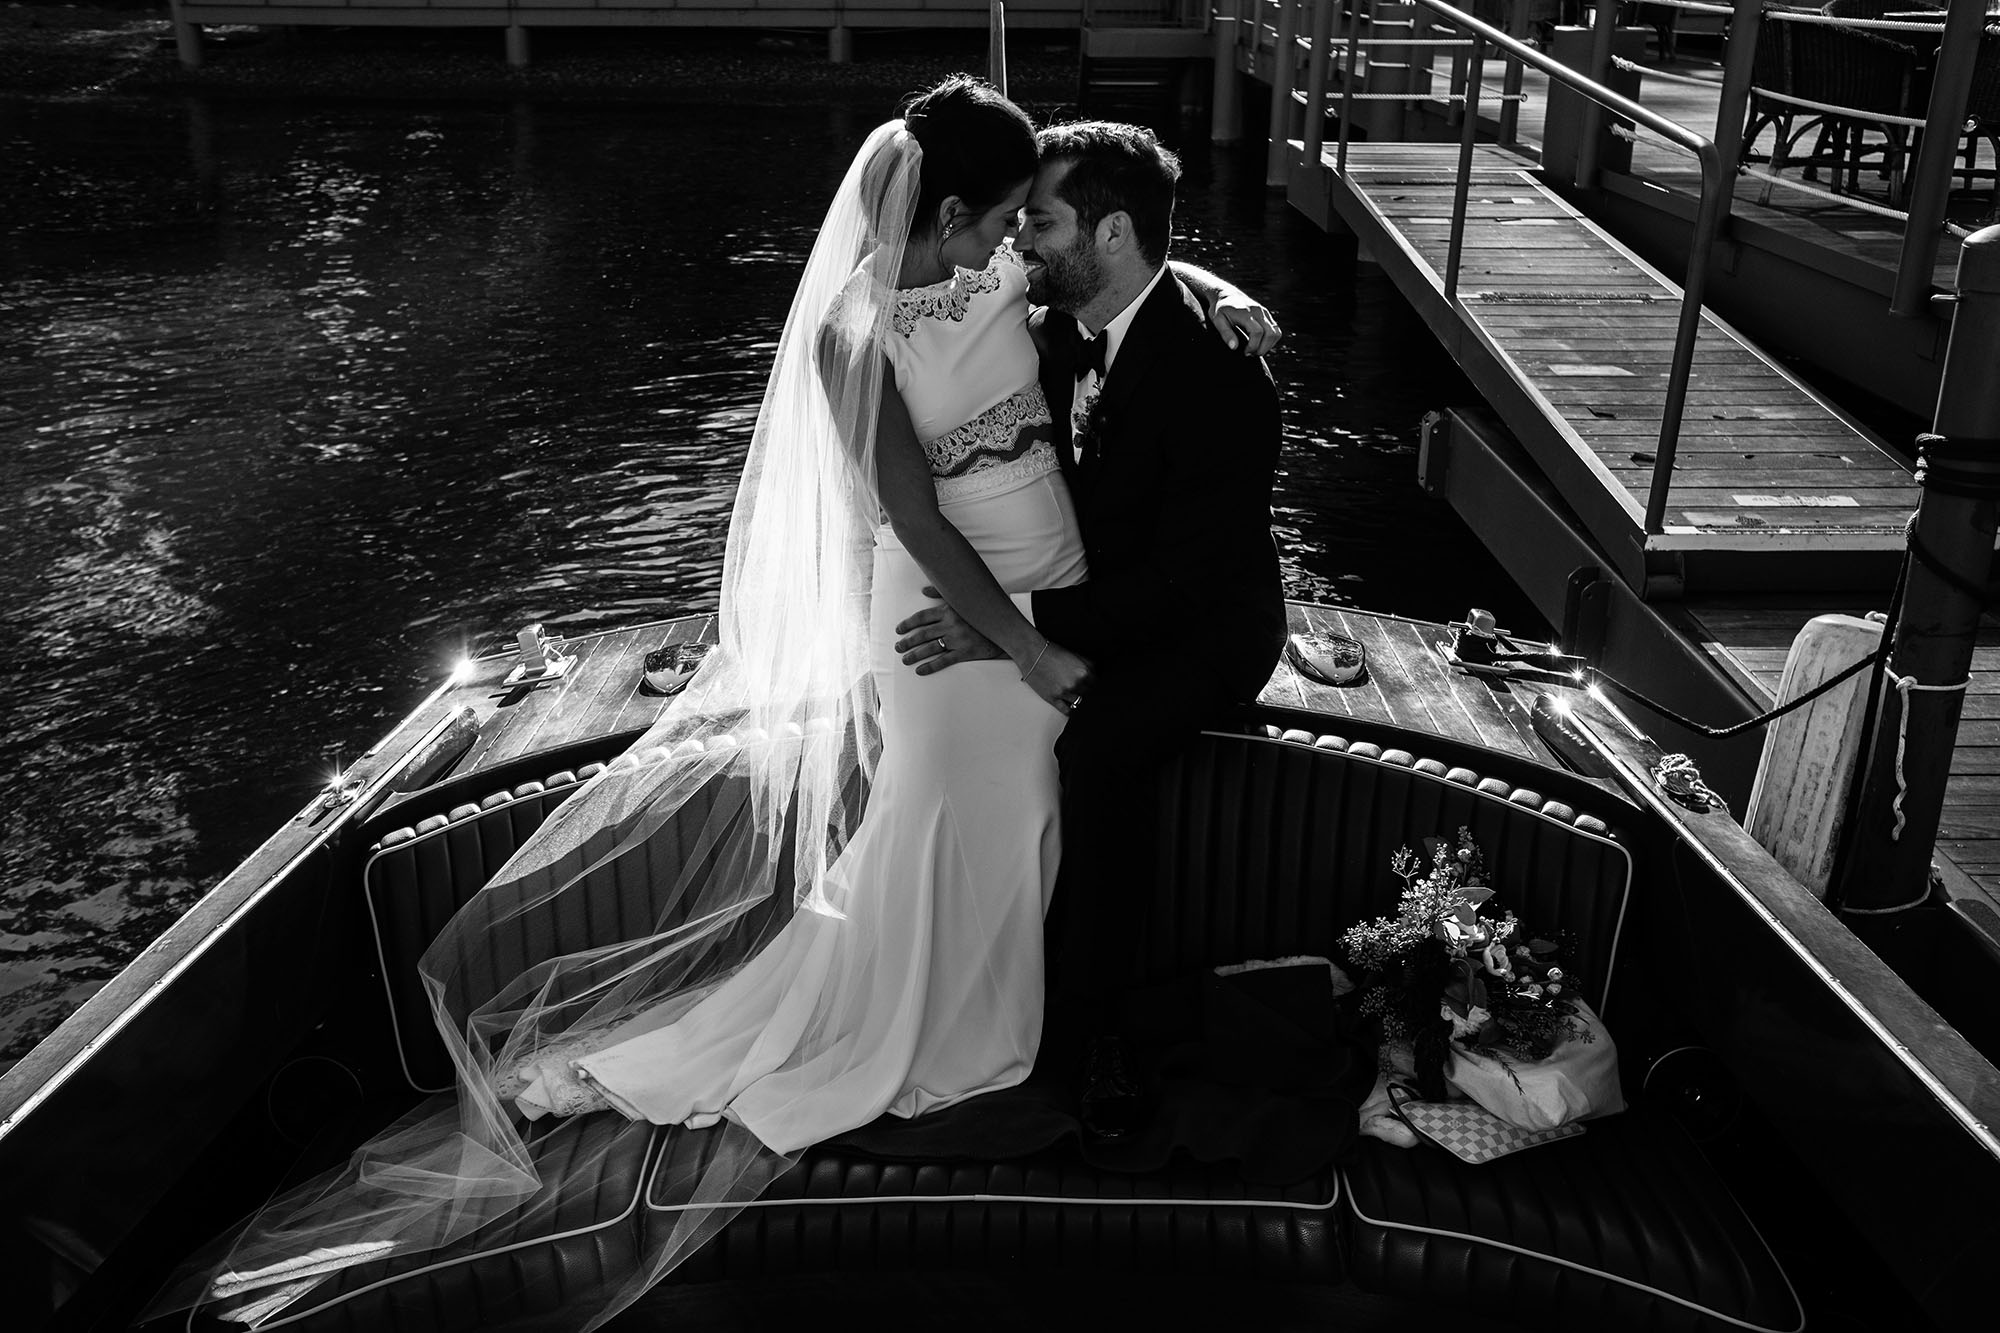 West_Shore_Cafe_01_Kahlynn_Evan_Lake_Tahoe_Wedding_Shaunte_Dittmar_Photography.jpg.jpg.jpg